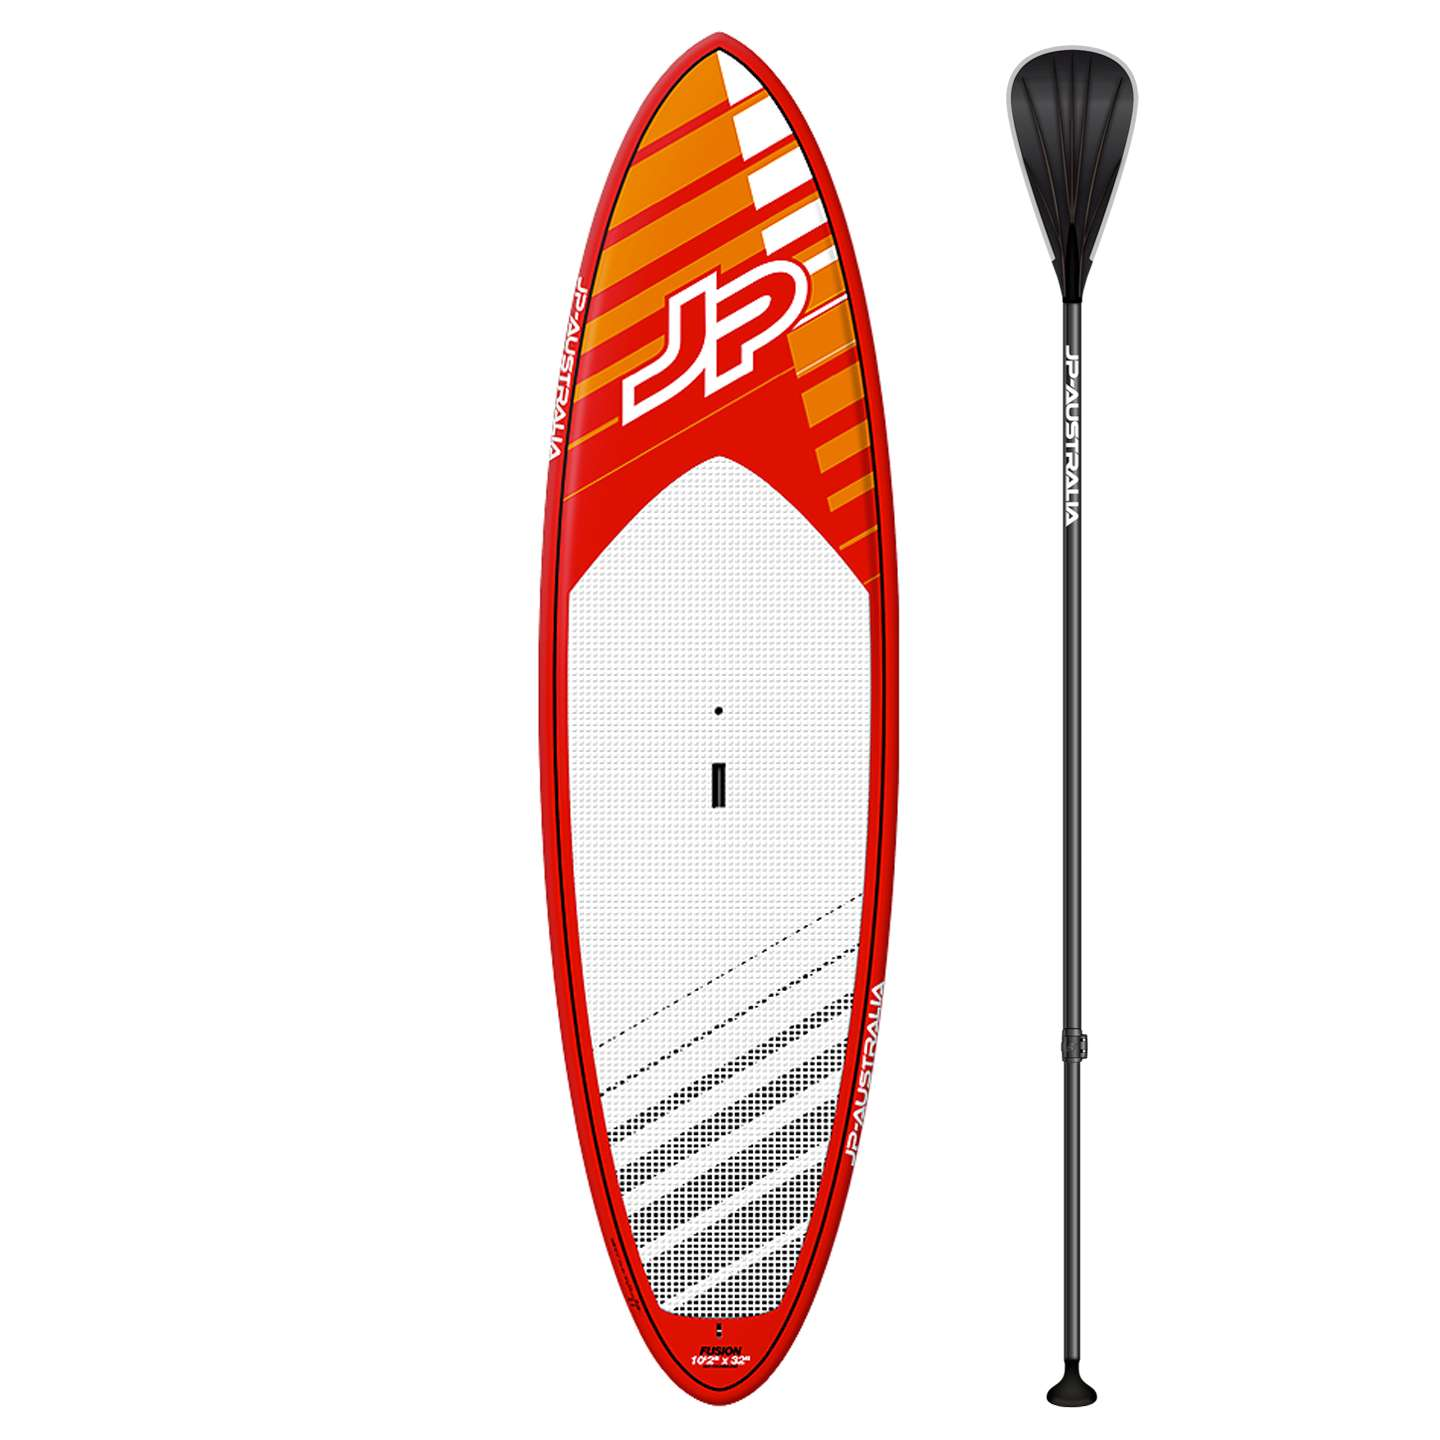 jp fusion ast 9 39 8 sup board 2016 king of watersports. Black Bedroom Furniture Sets. Home Design Ideas